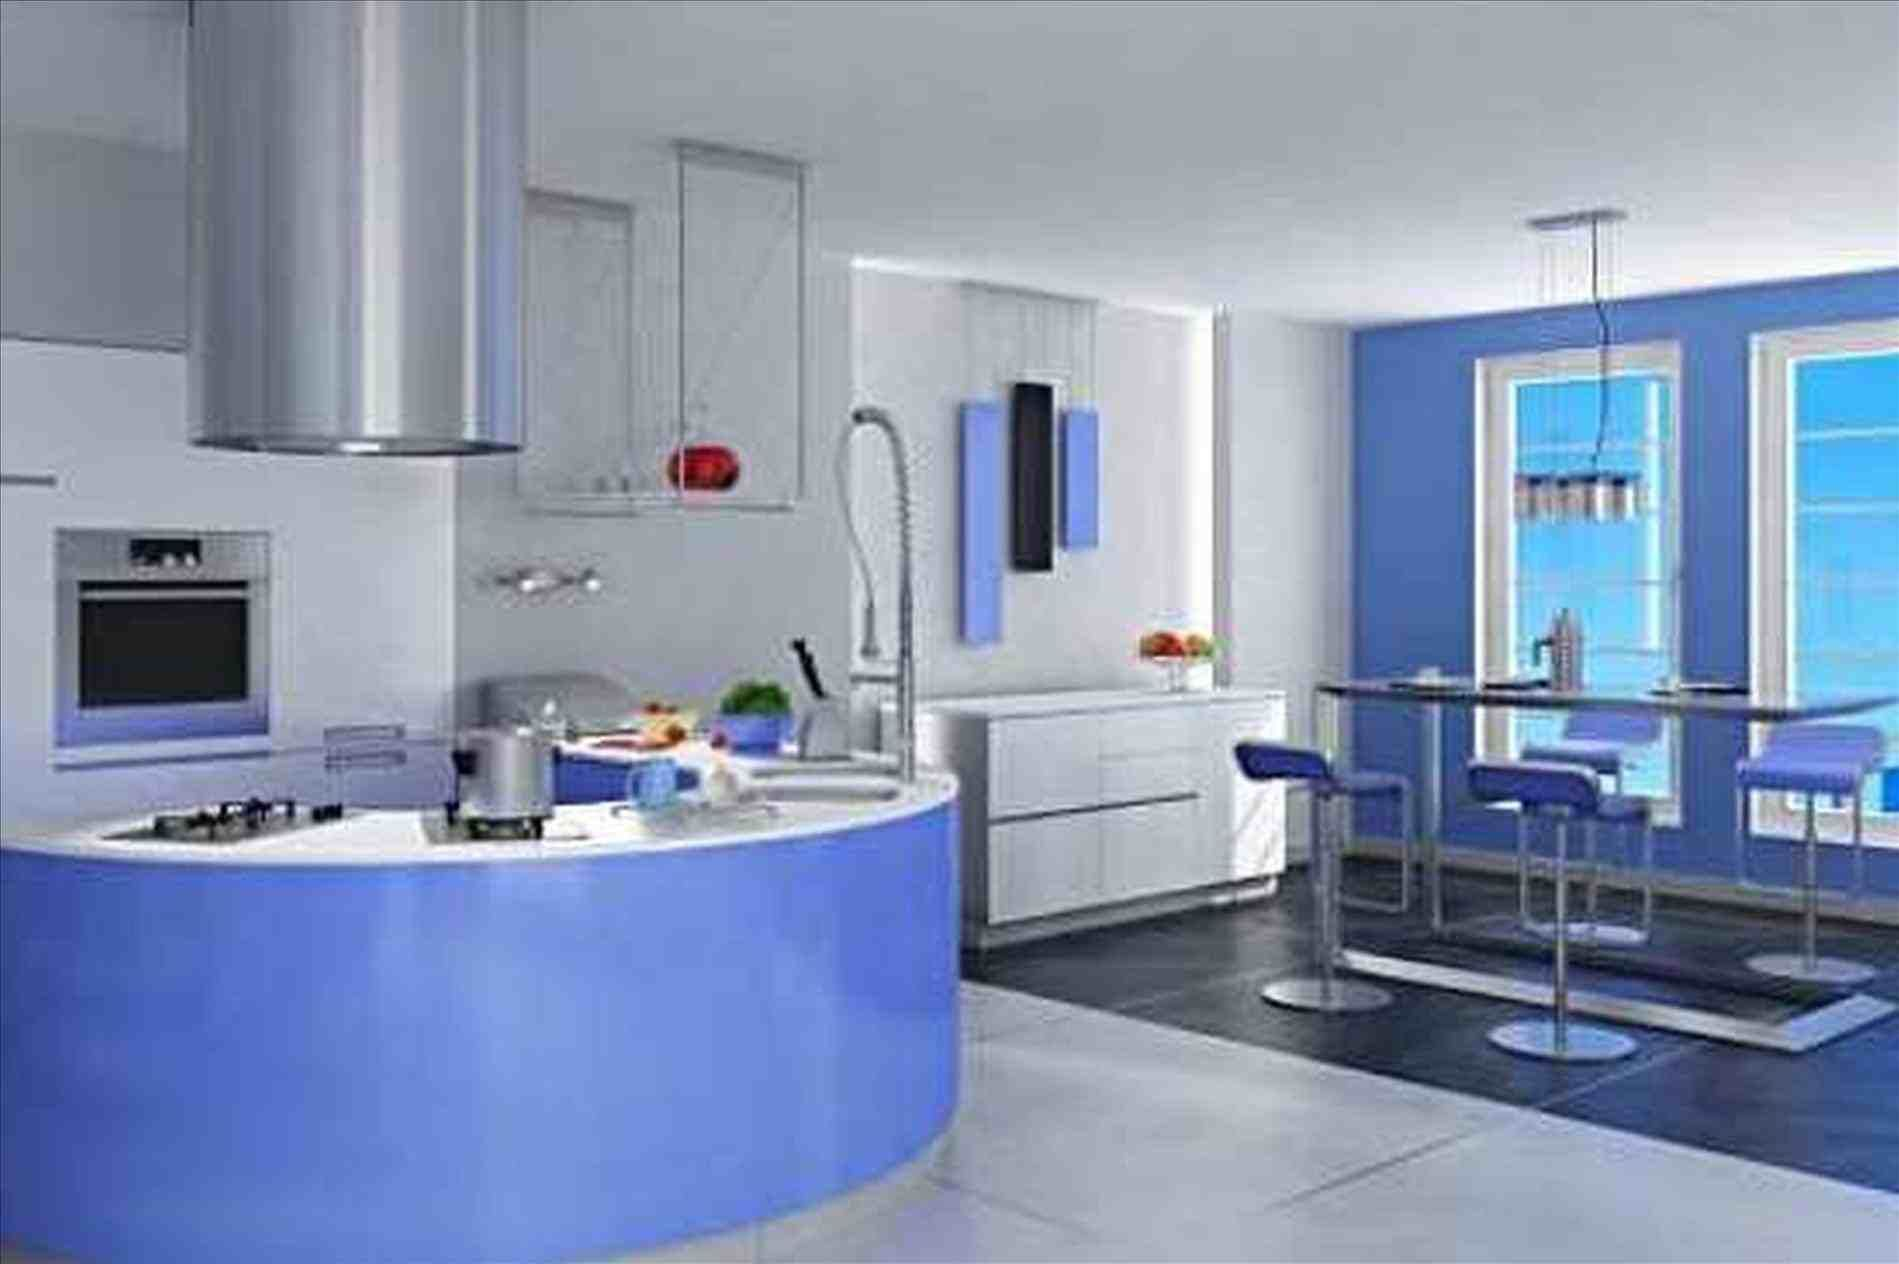 New Post Home Design Inside Kitchen Simple Visit Bobayule Trending